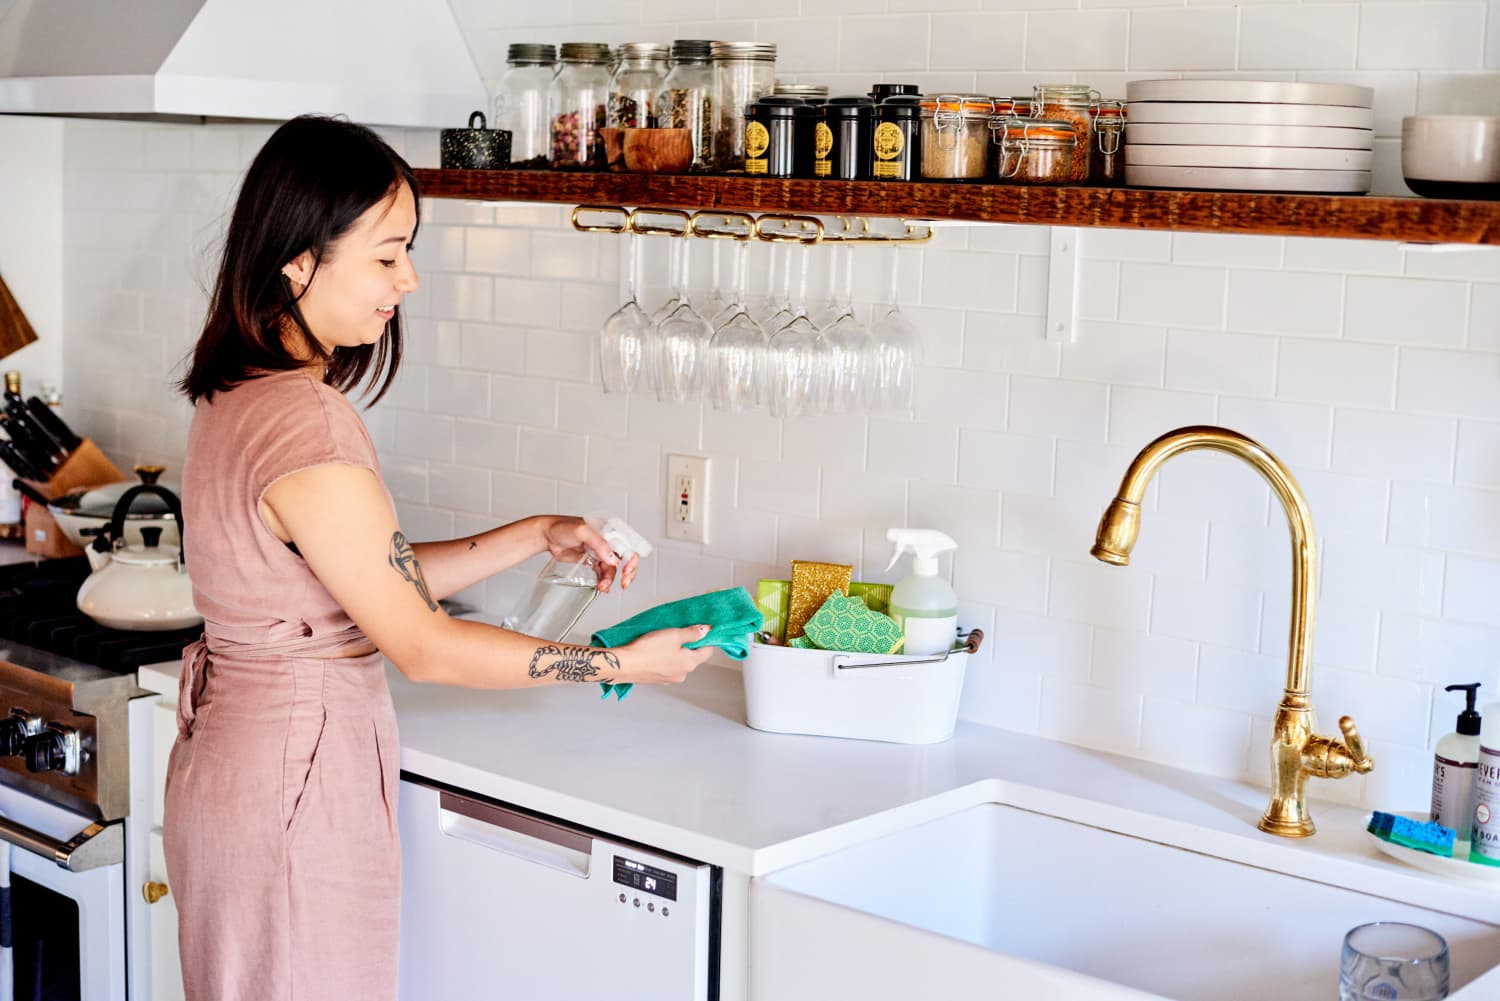 50 Tiny Things You Can Do for Your Kitchen in Less than an Hour